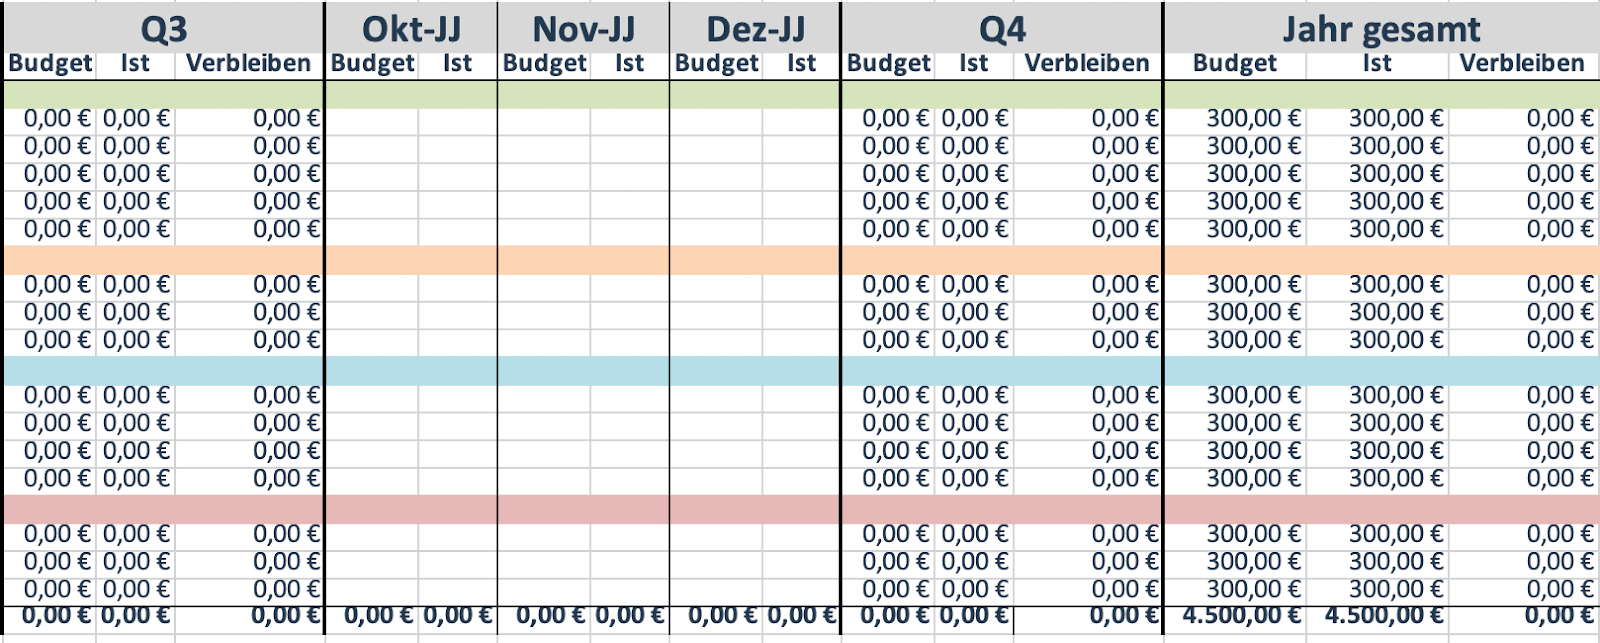 Marketingbudget Vorlage nach Quartal Excel Tabelle